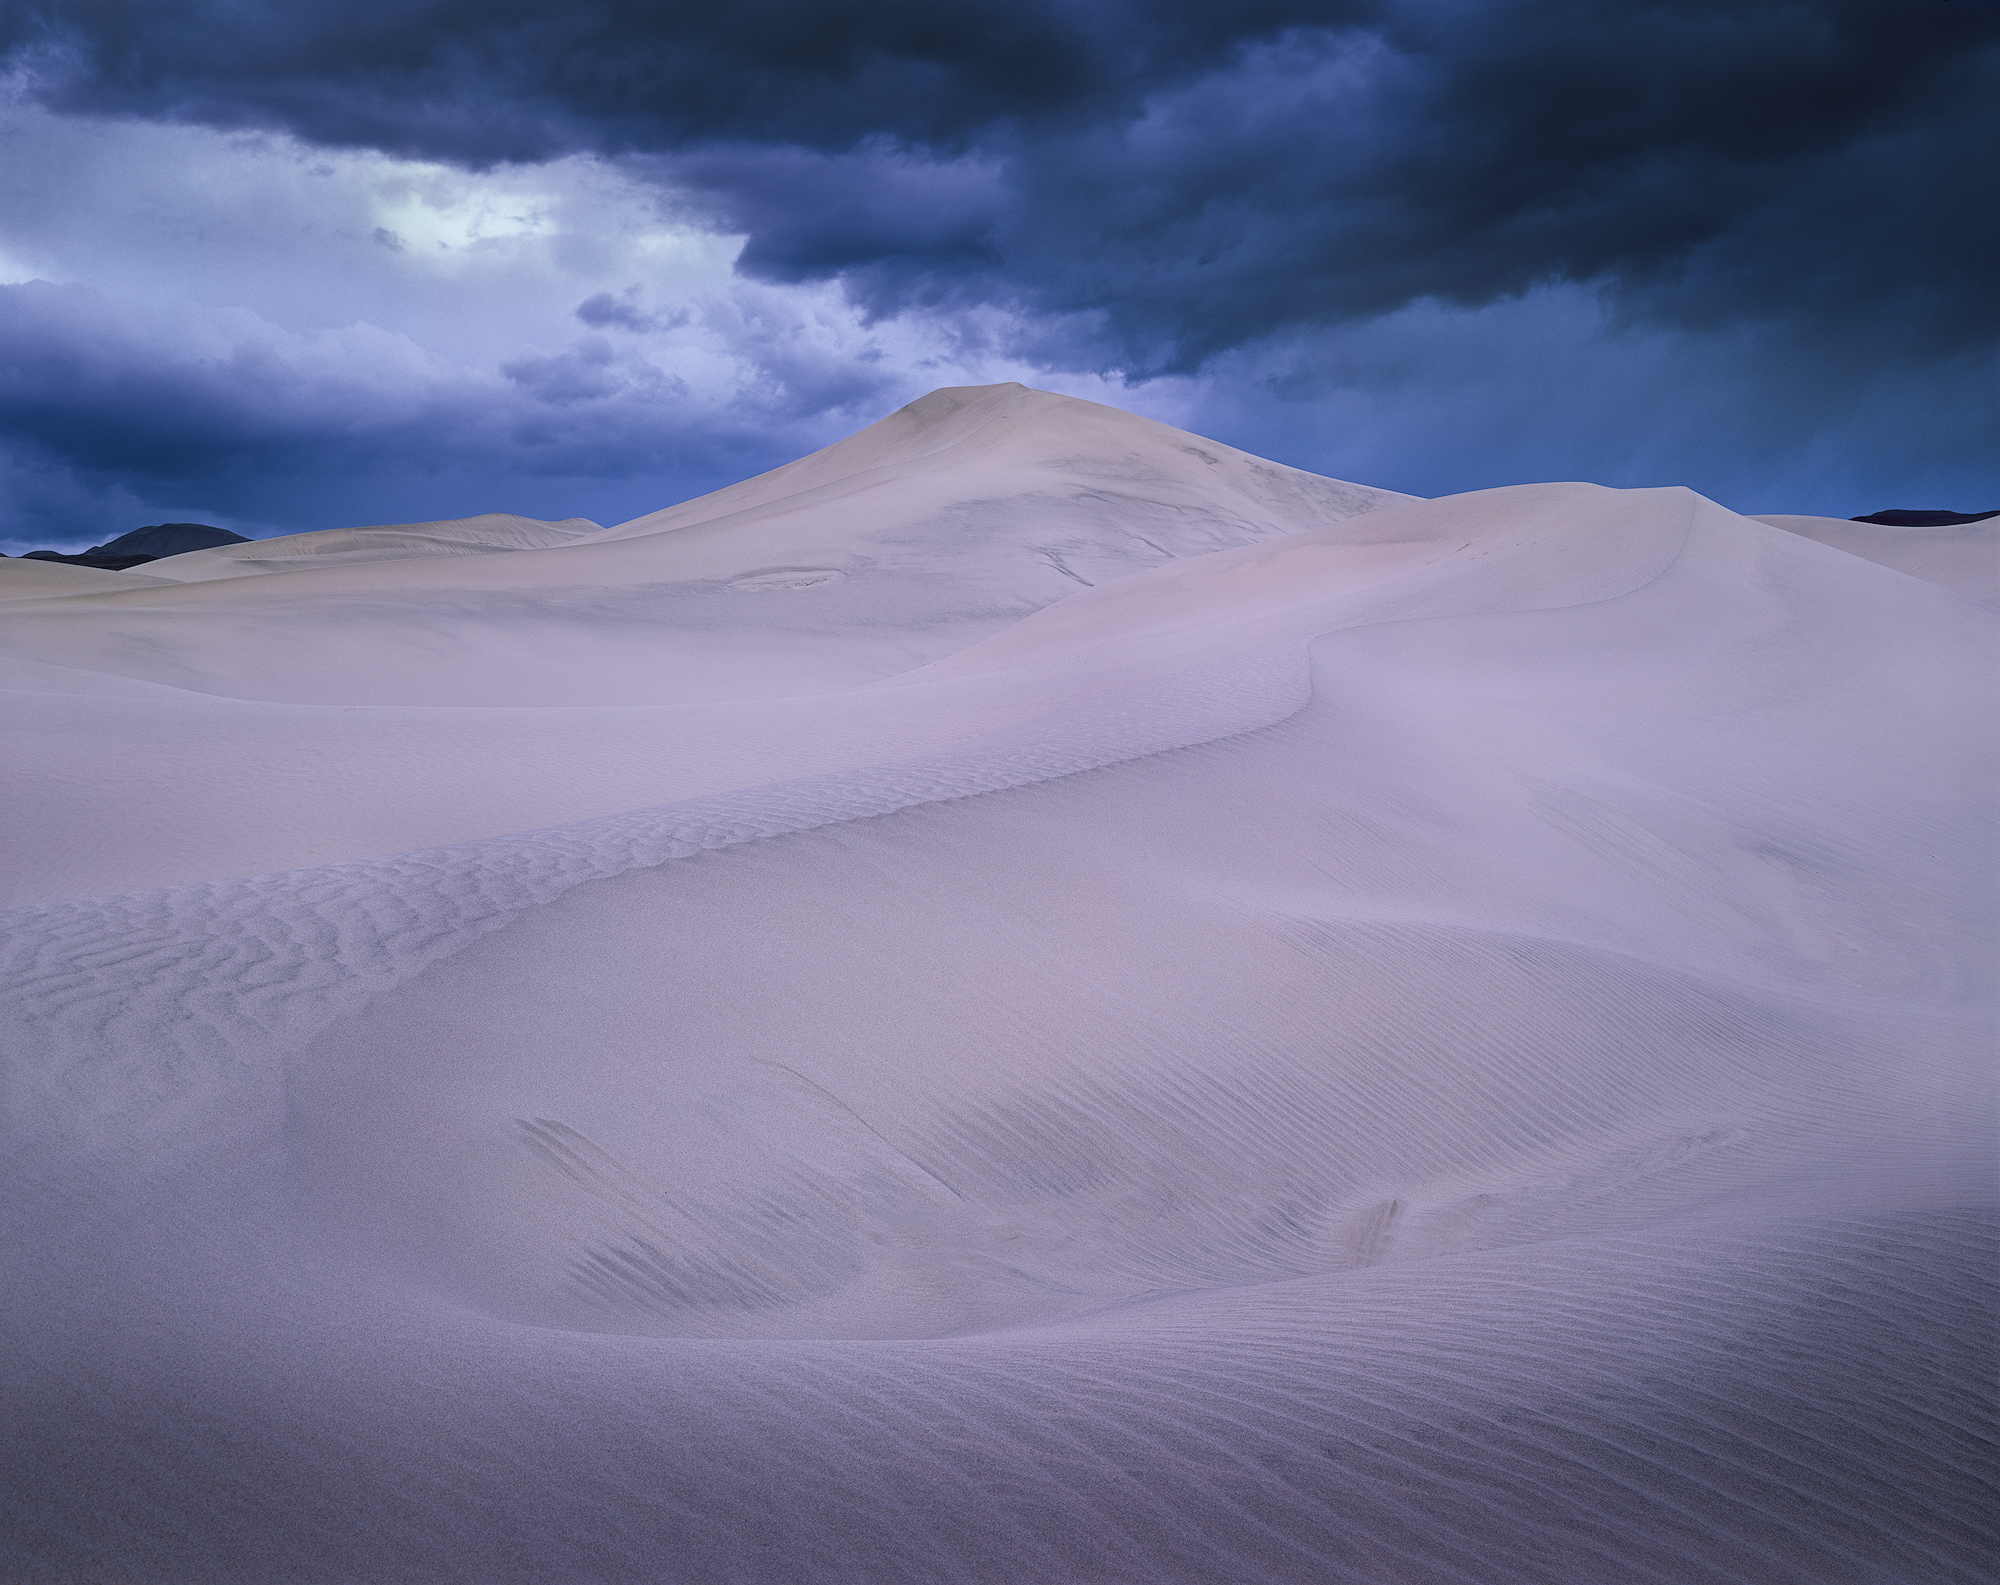 "Desert Storm, Chamonix 4x5, Rodenstock 90mm f/6.8, 30"" exposure @ f/32 on Fuji Velvia 50 - March, 2019"